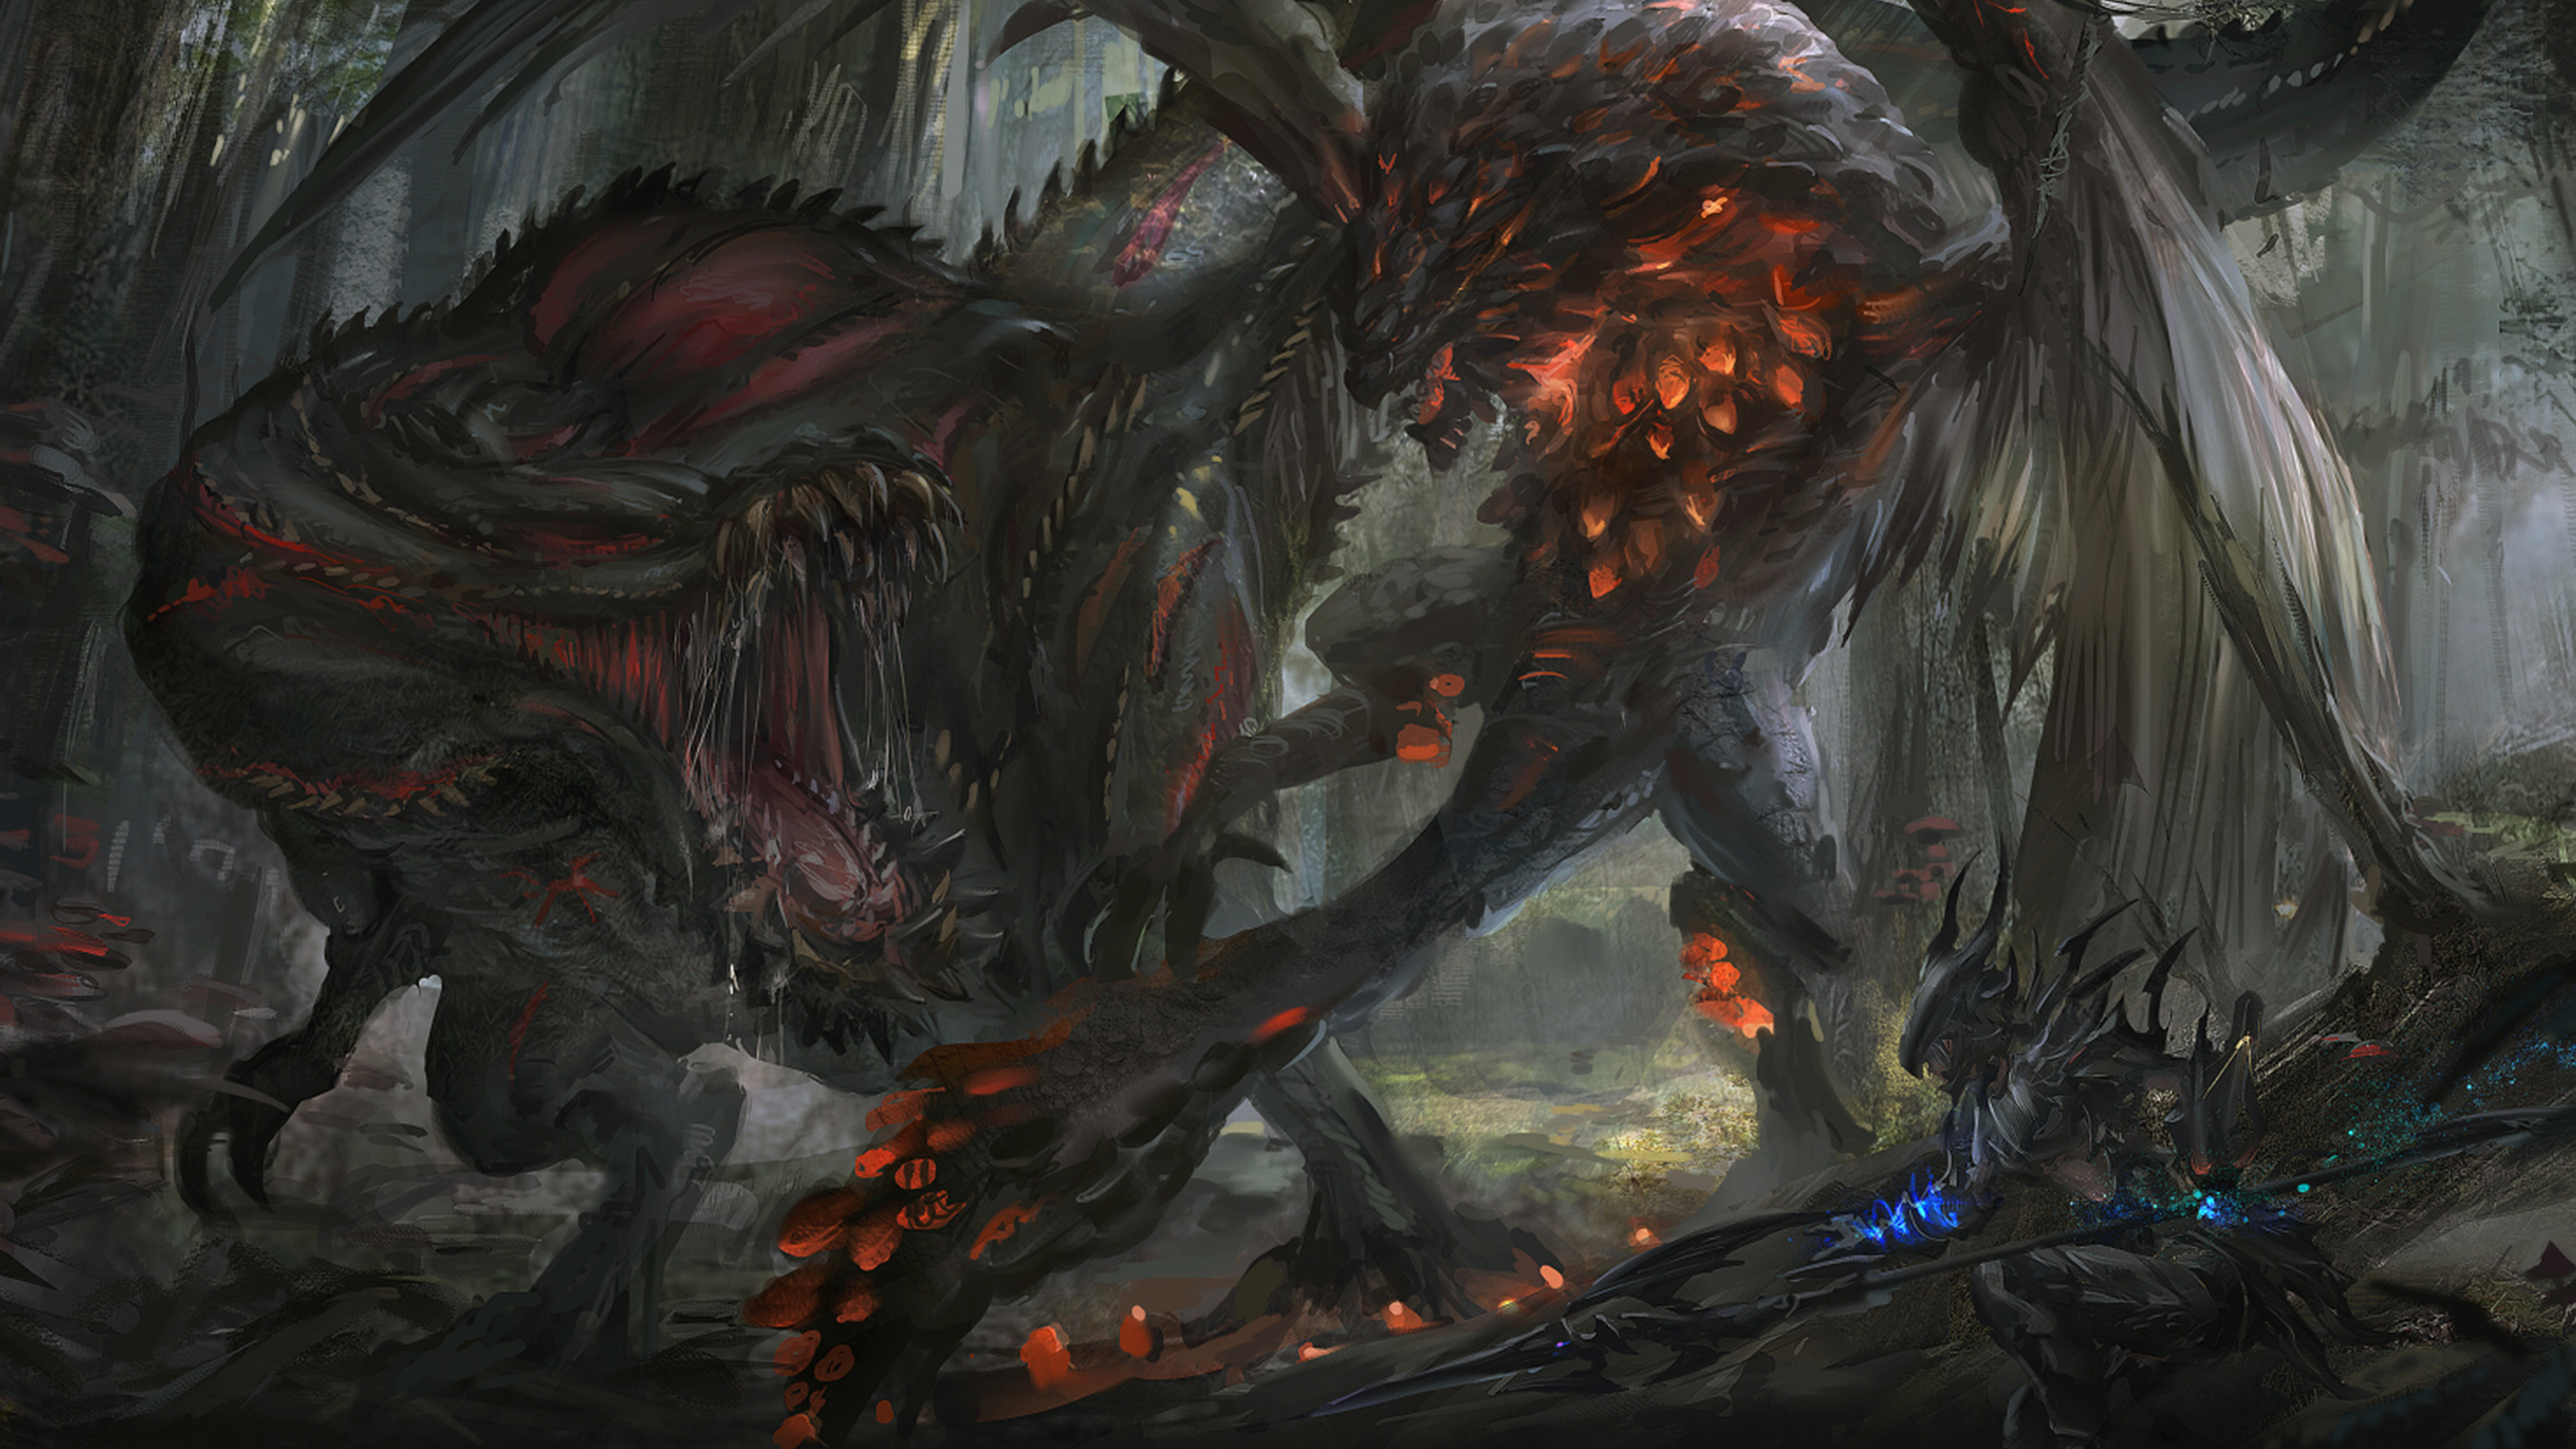 General 3840x2160 video games Monster Hunter Monster Hunter: World video game art dragon